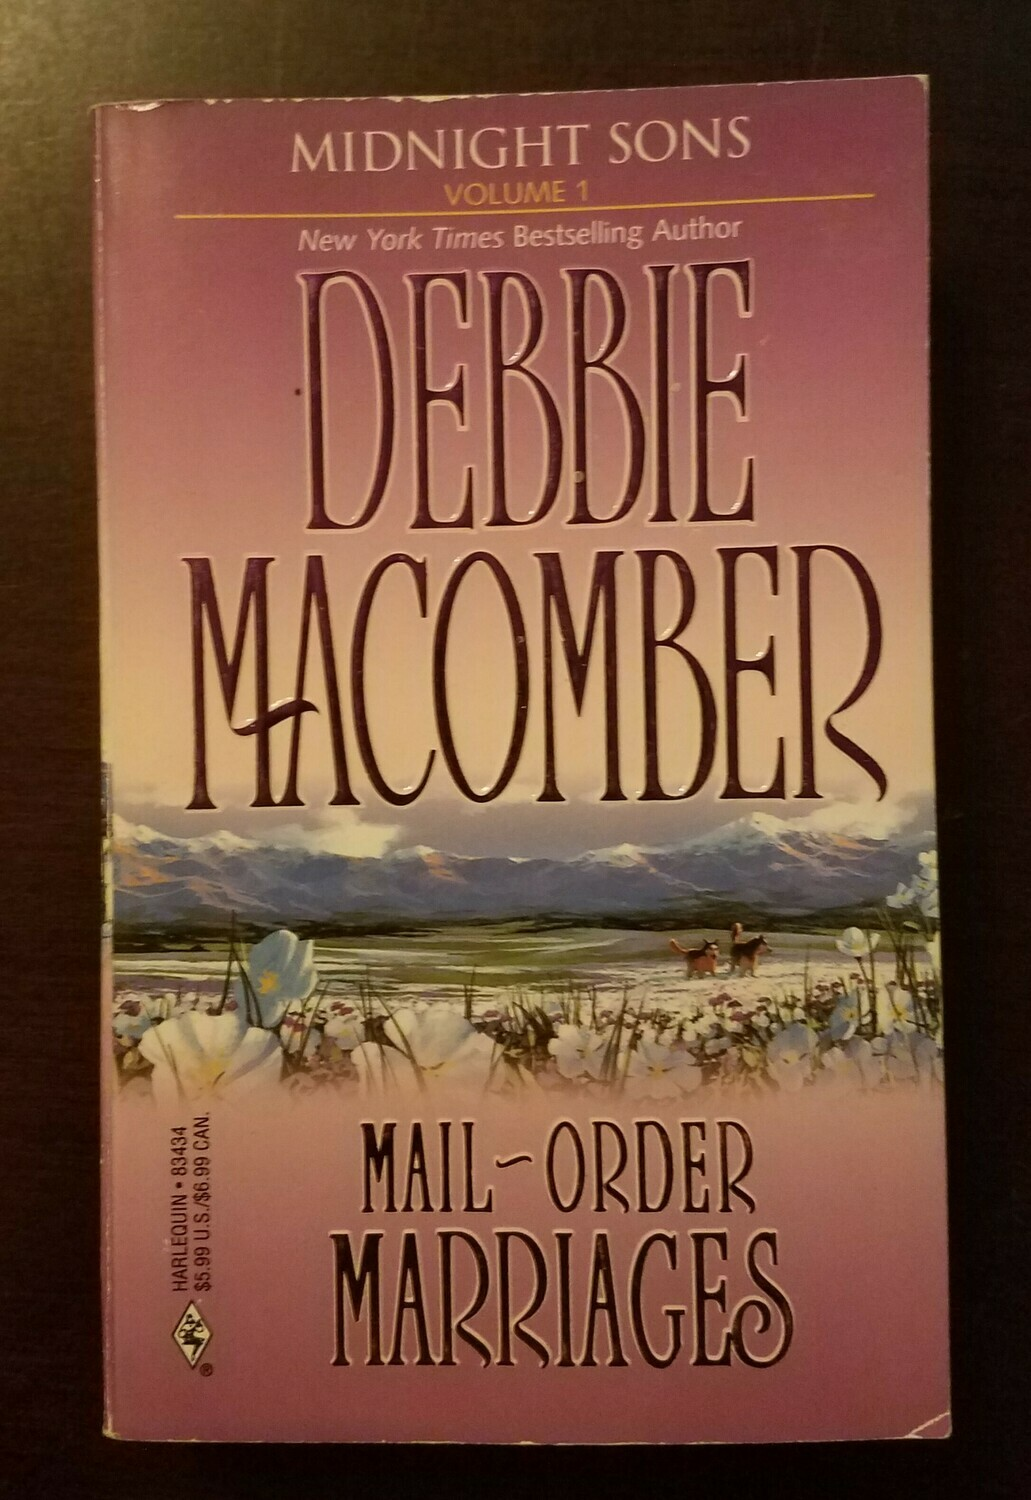 Mail-Order Marriages by Debbie Macomber